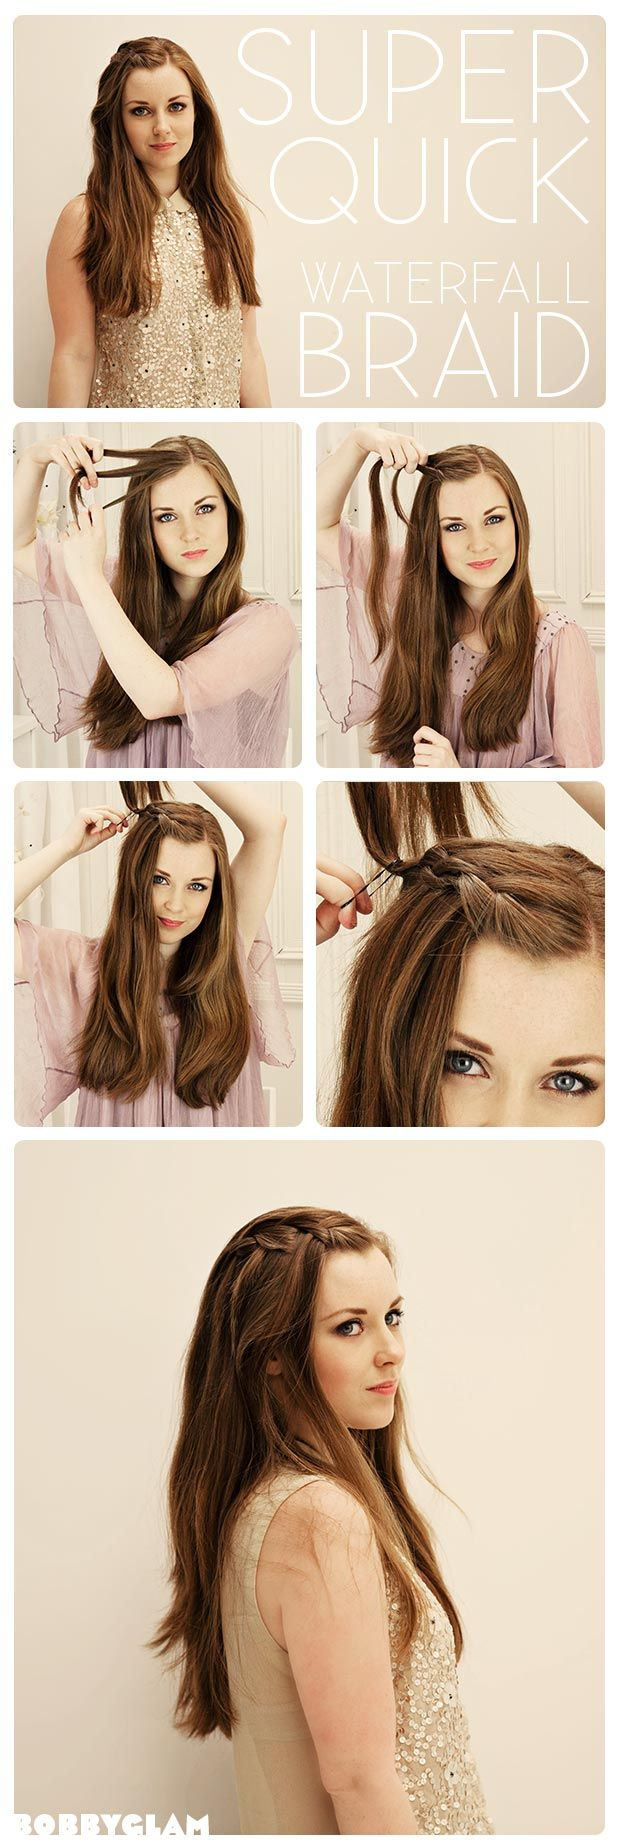 Super Quick Waterfall Braid Hairstyle Tutorial